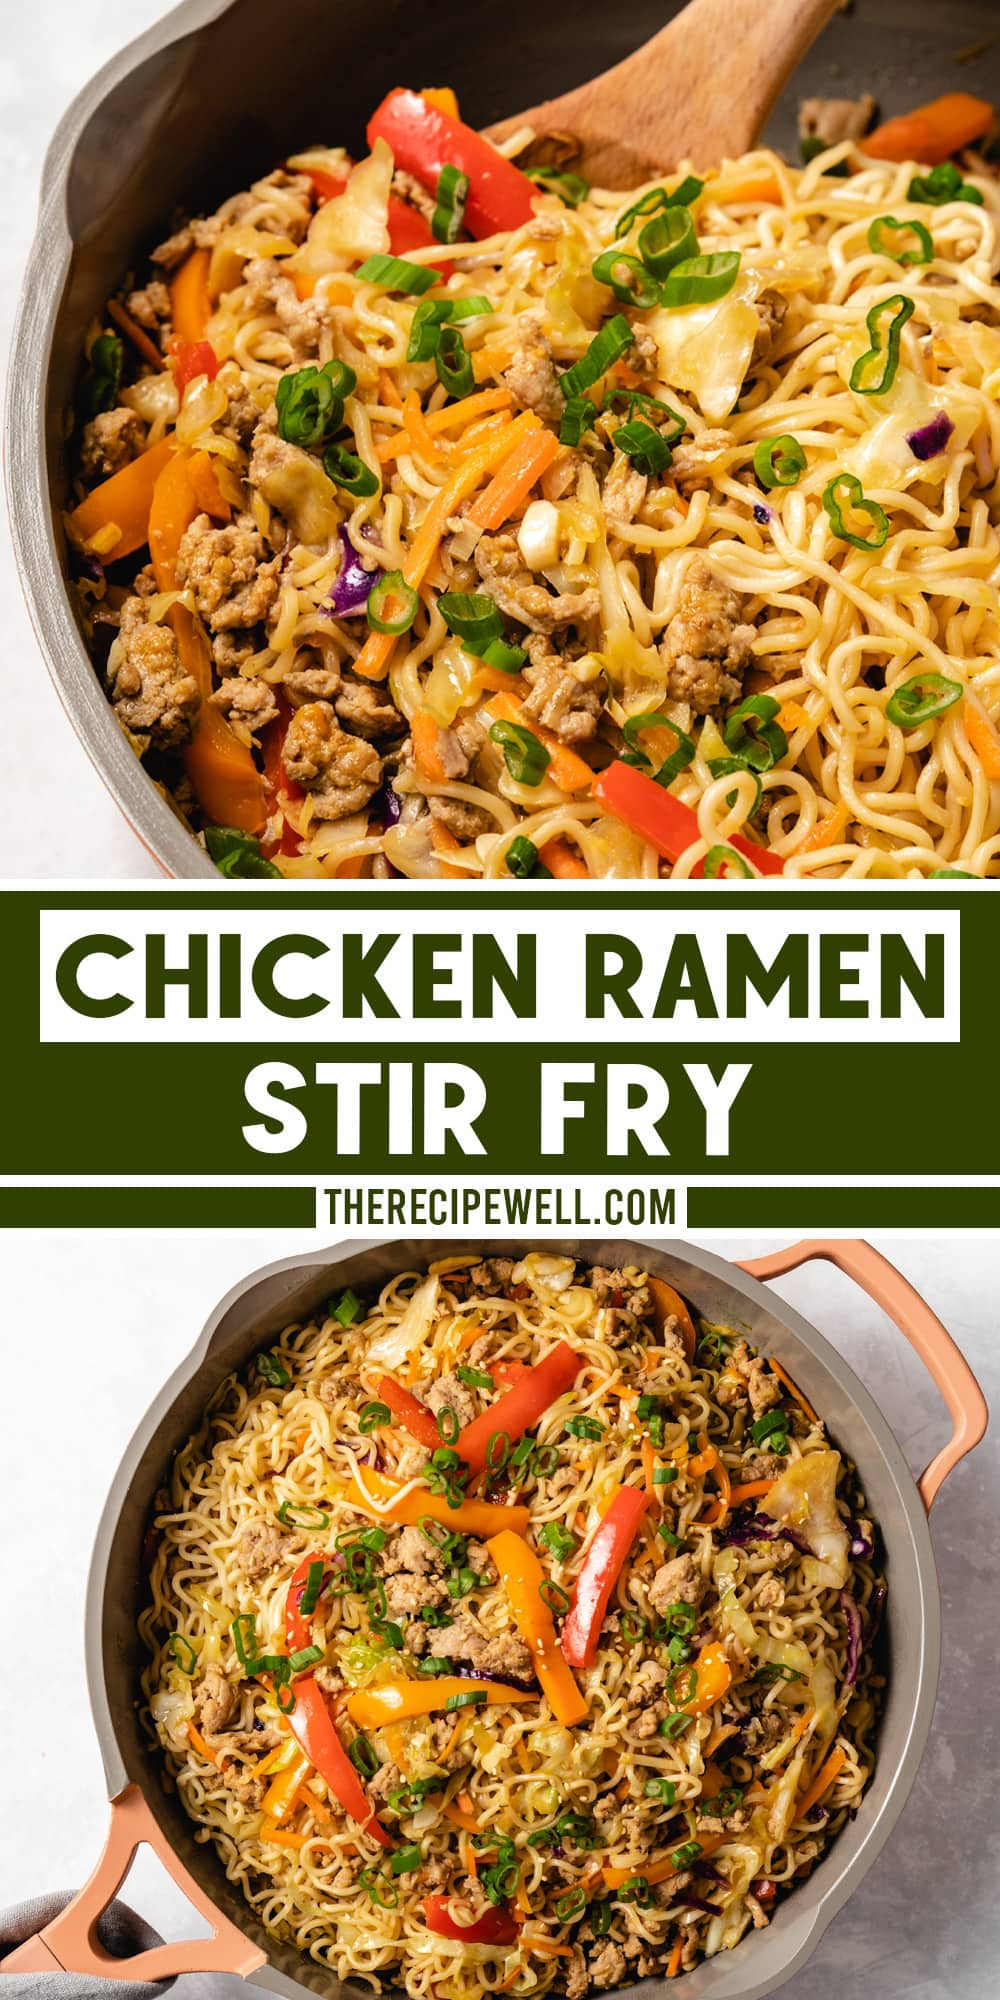 Transform your ramen noodles into this delicious Chicken Ramen Stir Fry. This easy meal is made with ground chicken, fresh vegetables and a homemade sauce. via @therecipewell